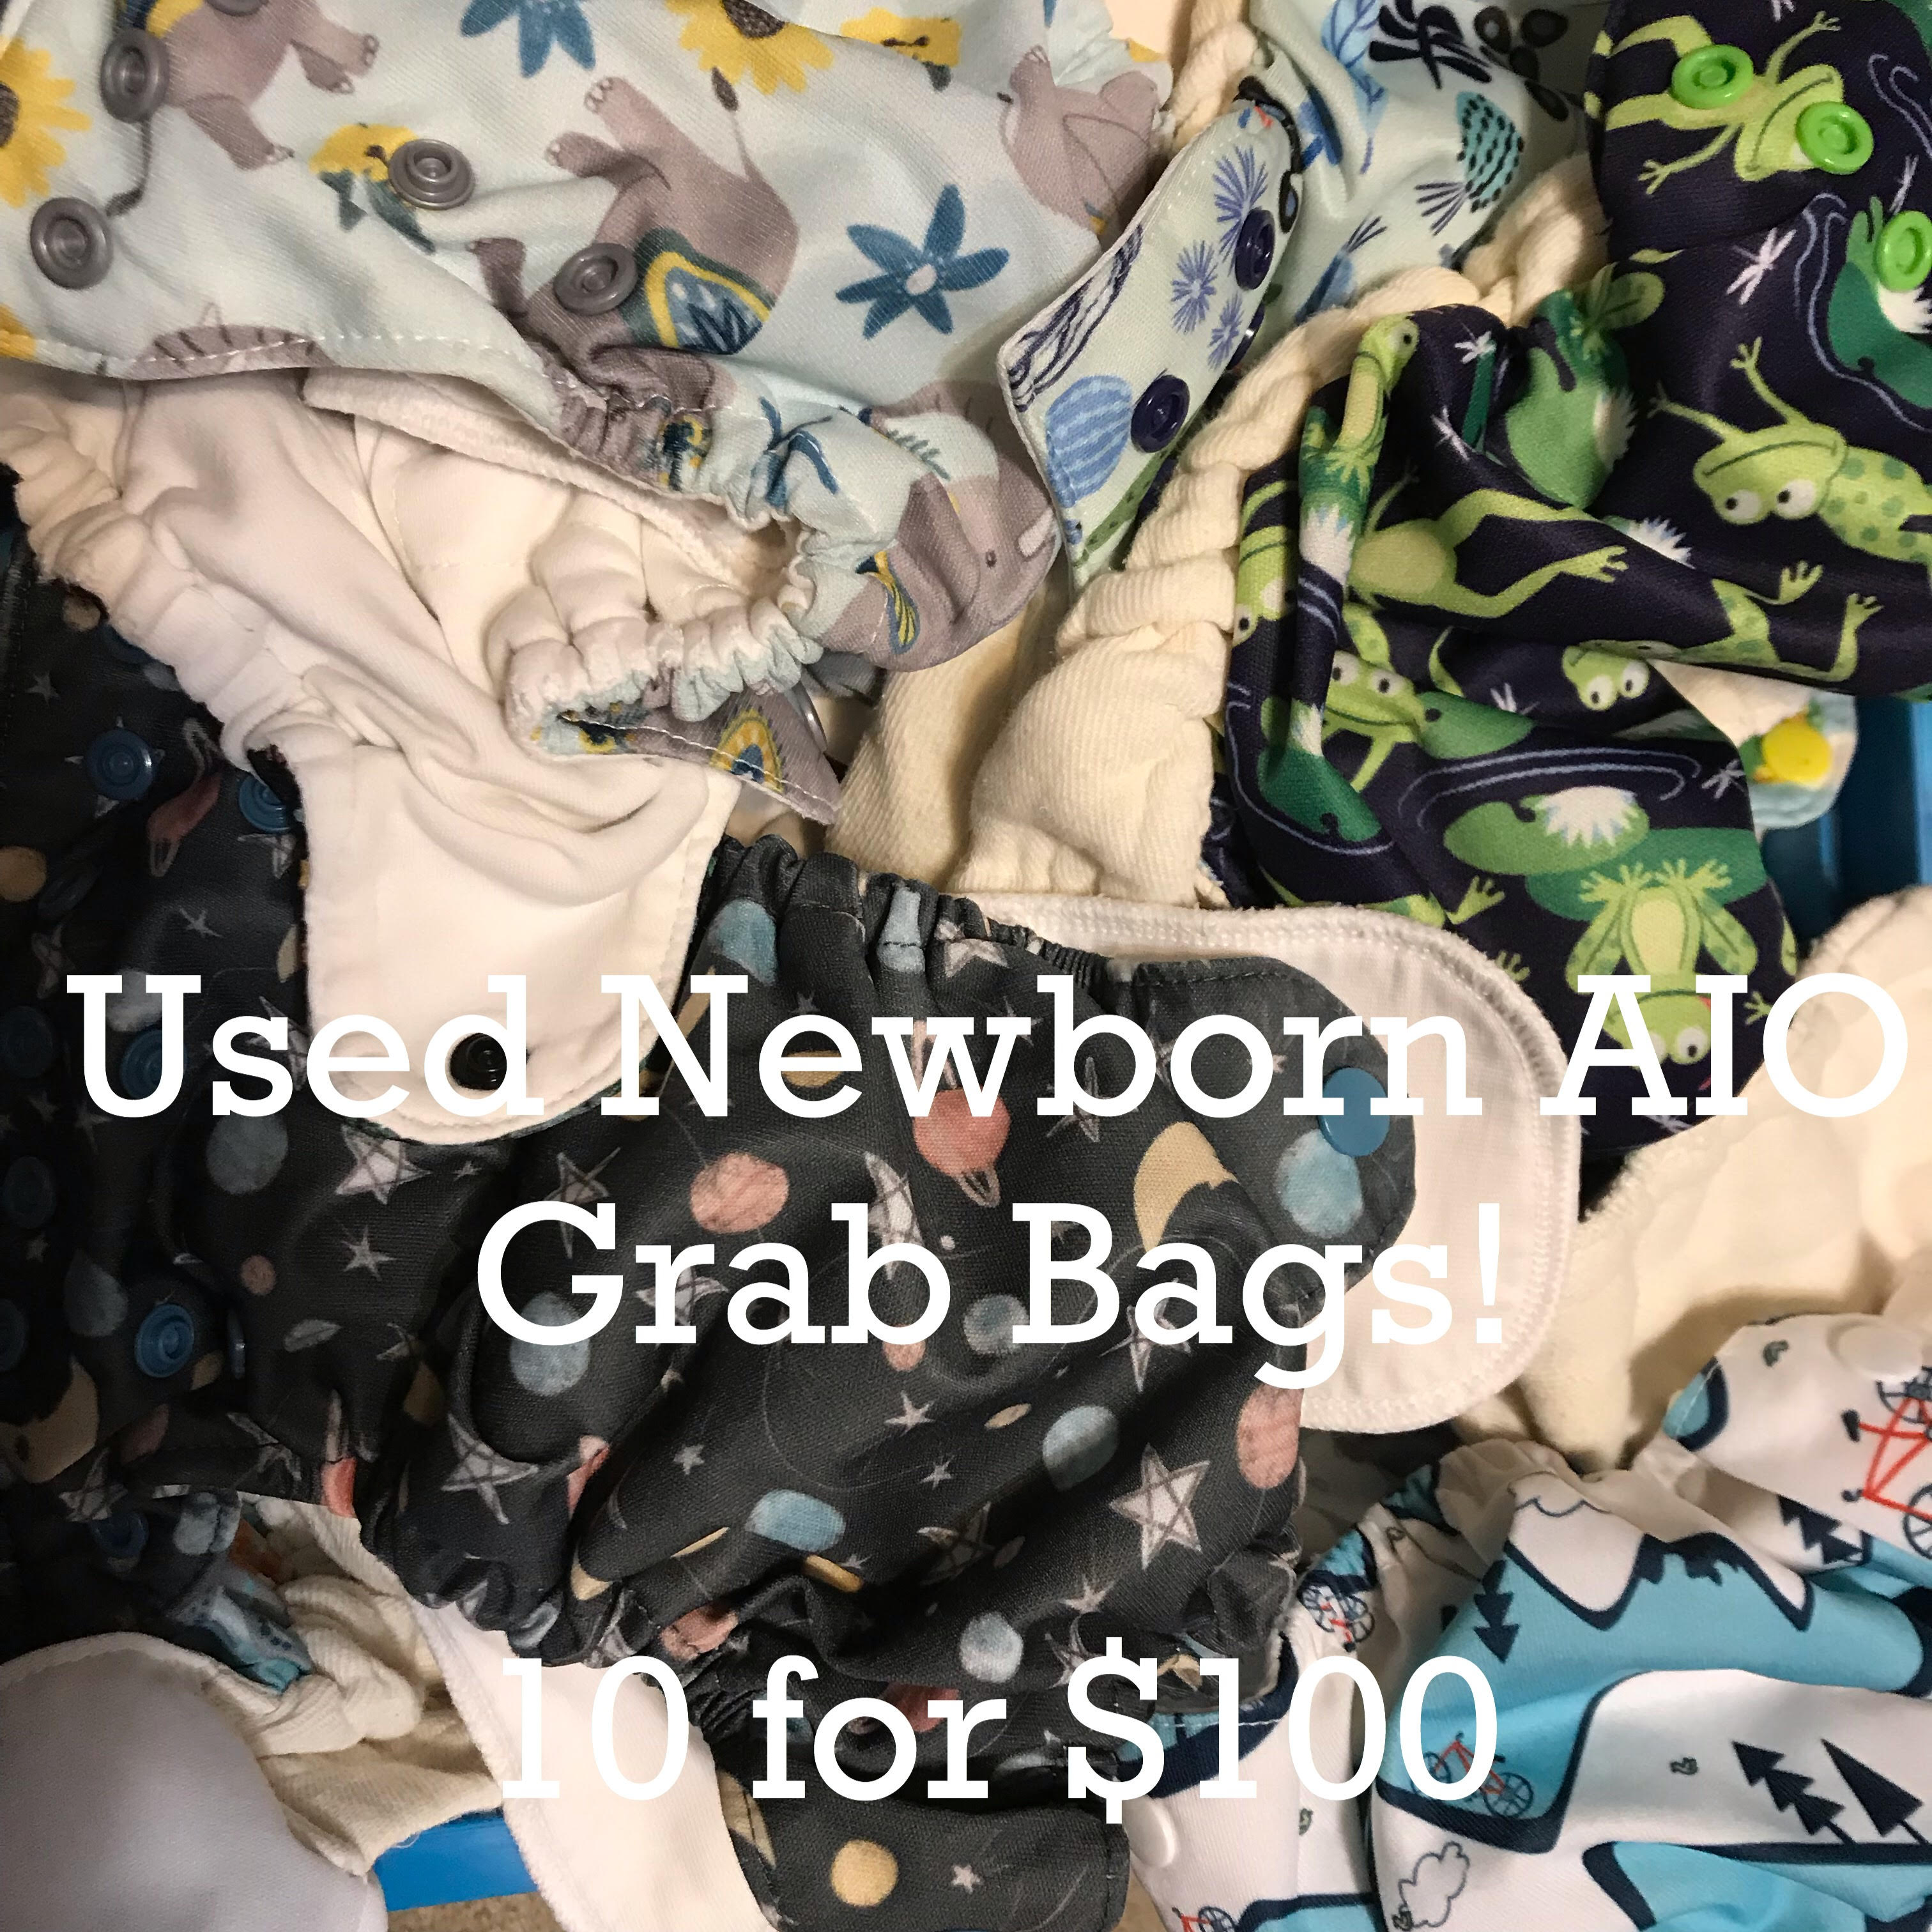 Newborn AIO Grab Bags - 10 Diapers for a great price!